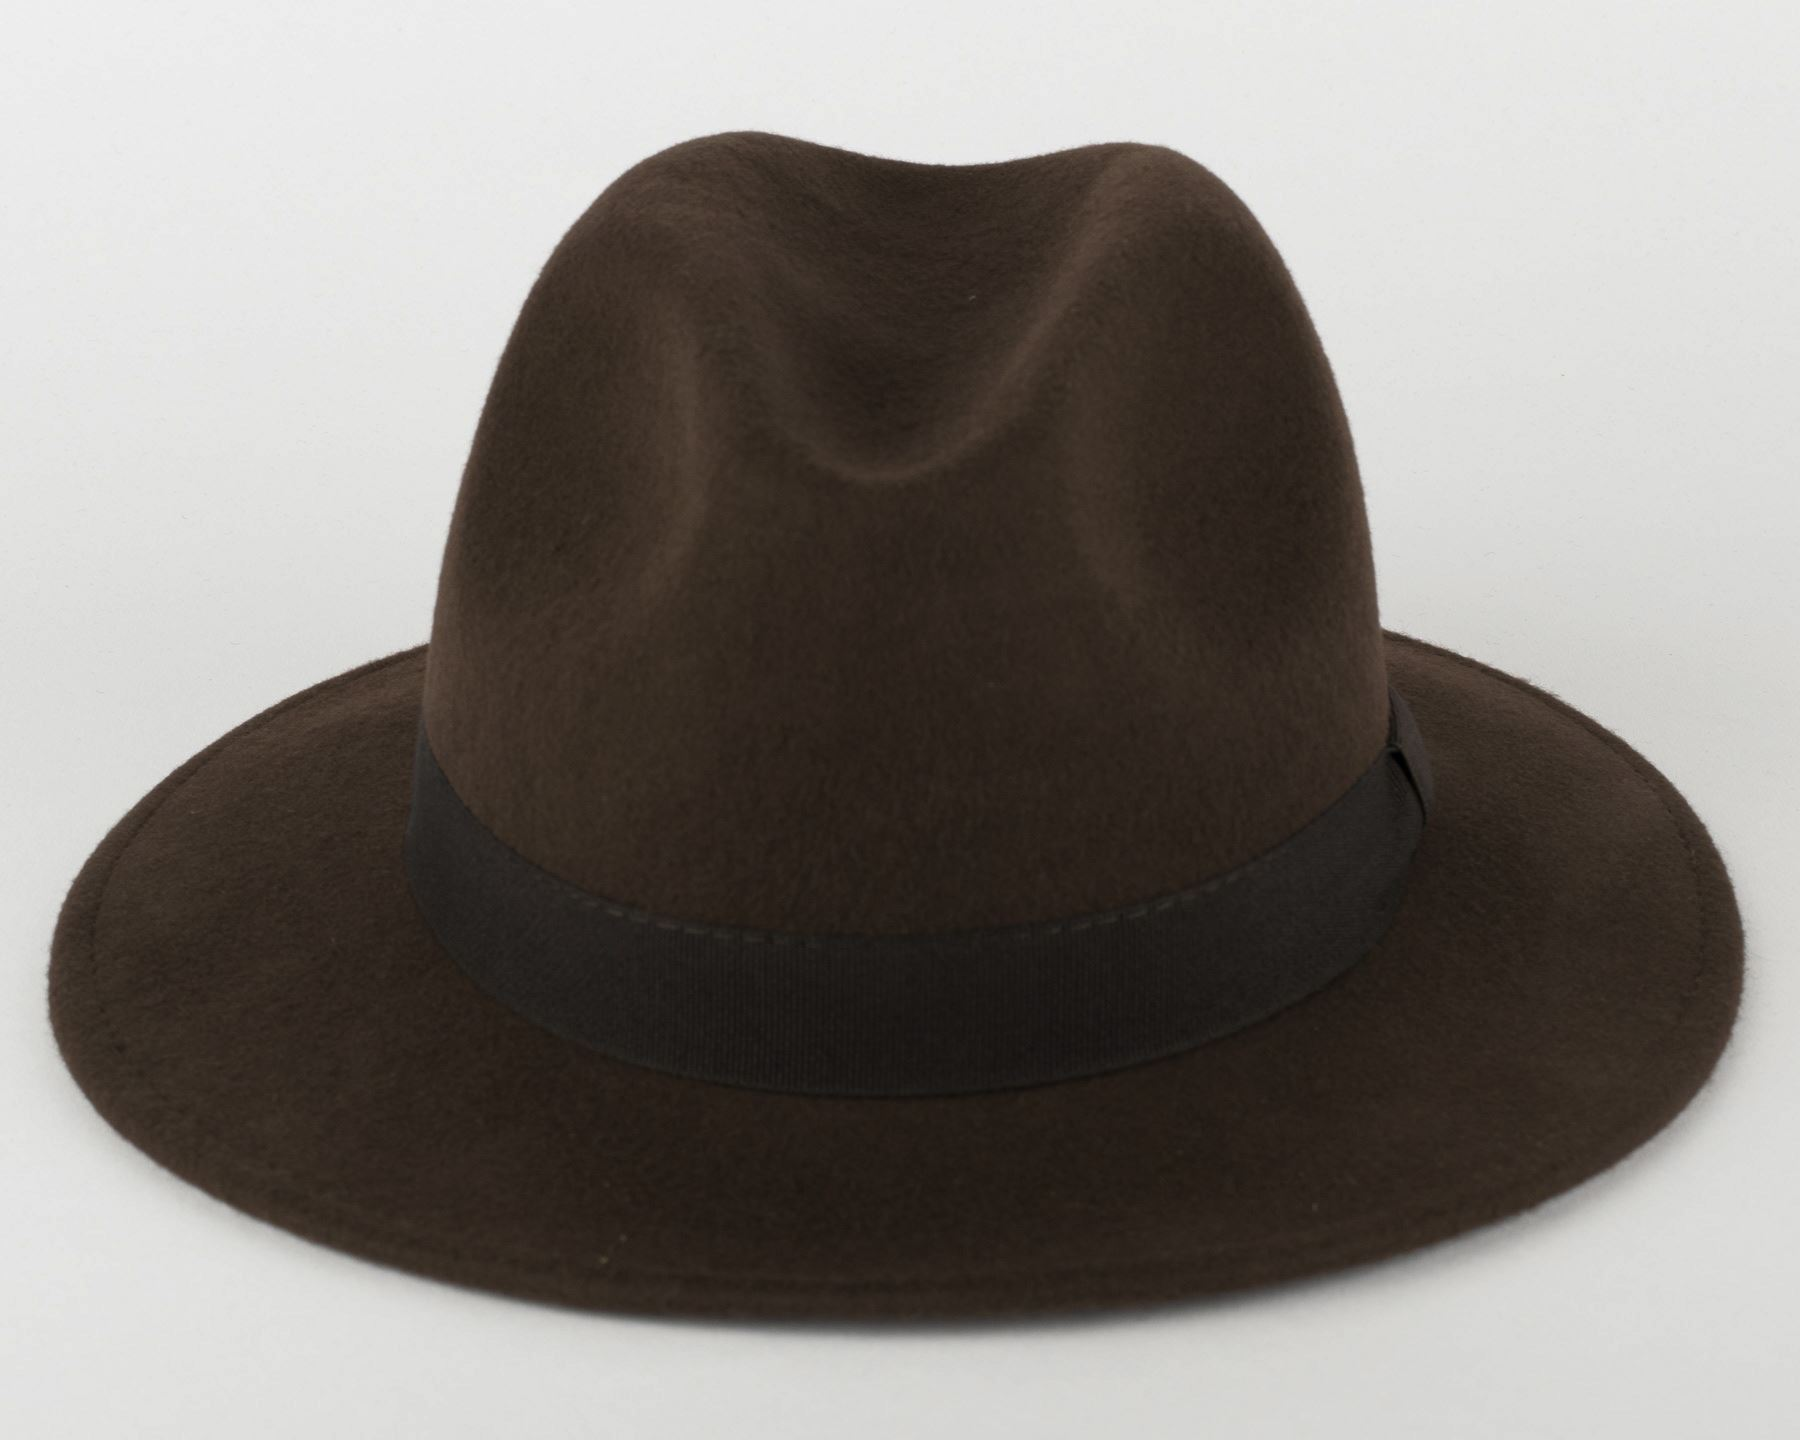 100/% Wool Fedora Hat with Grosgrain Band Handmade in Italy